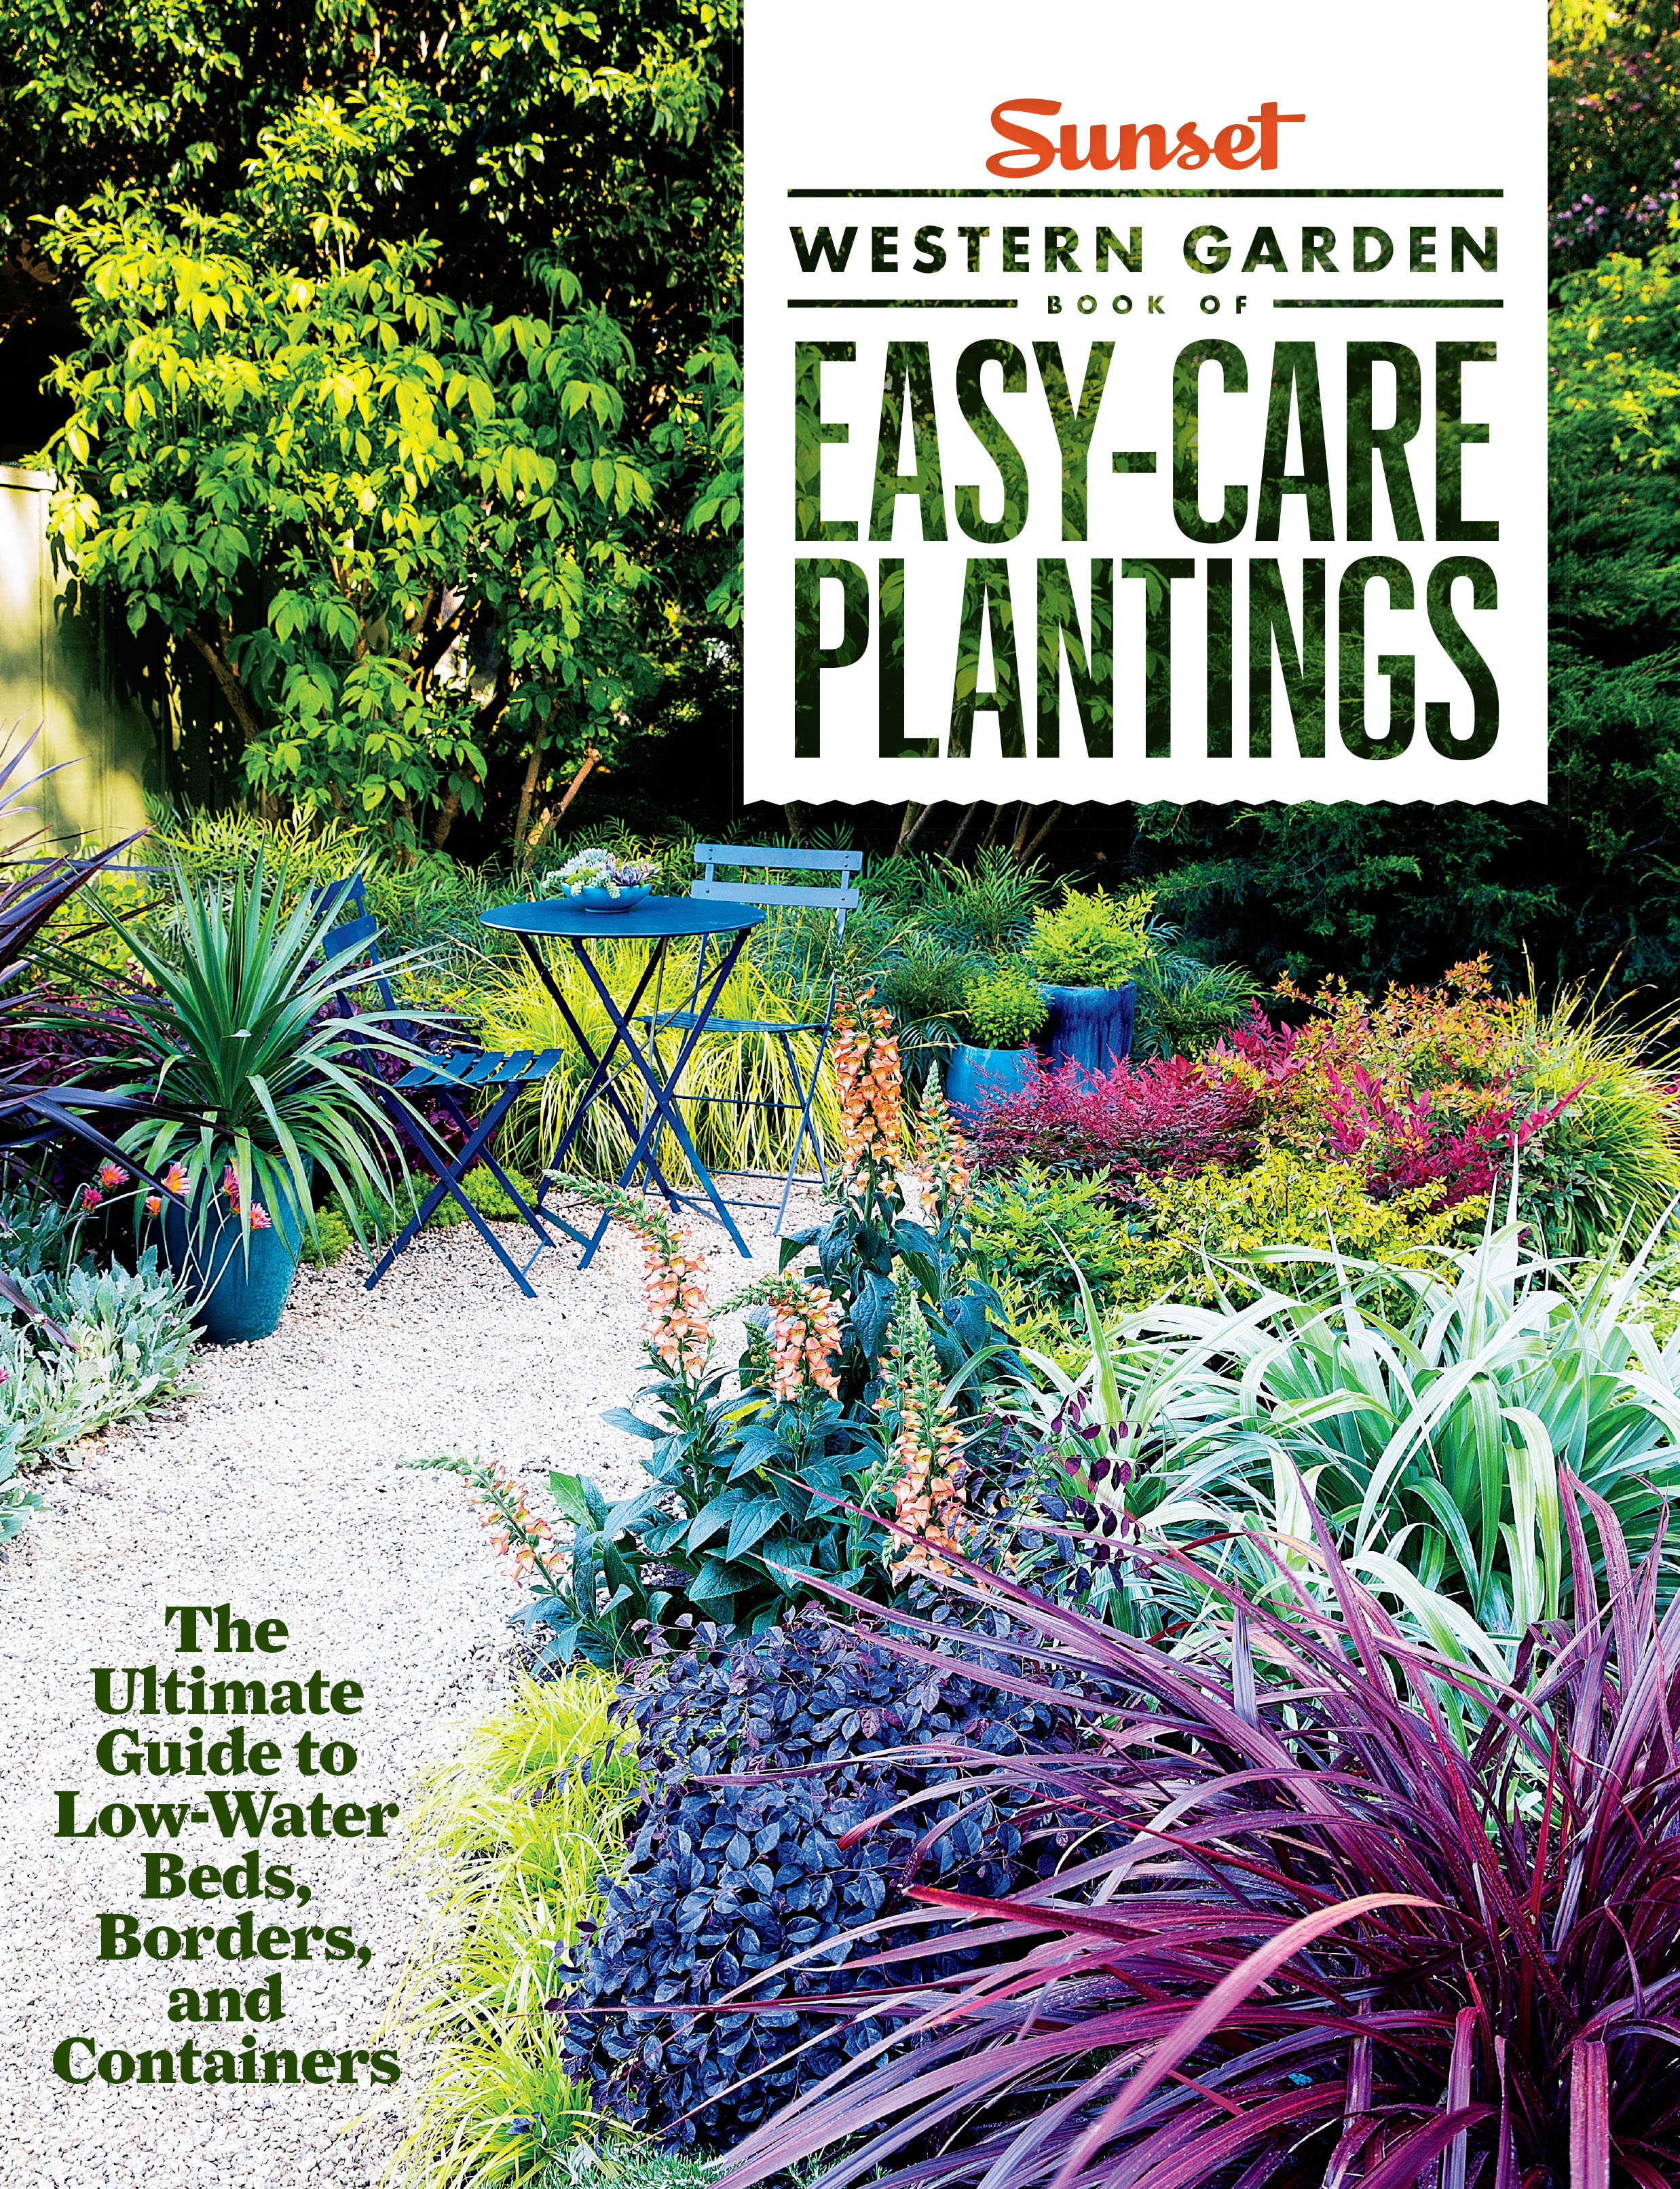 Sunset Easy Care publication with Growsgreen